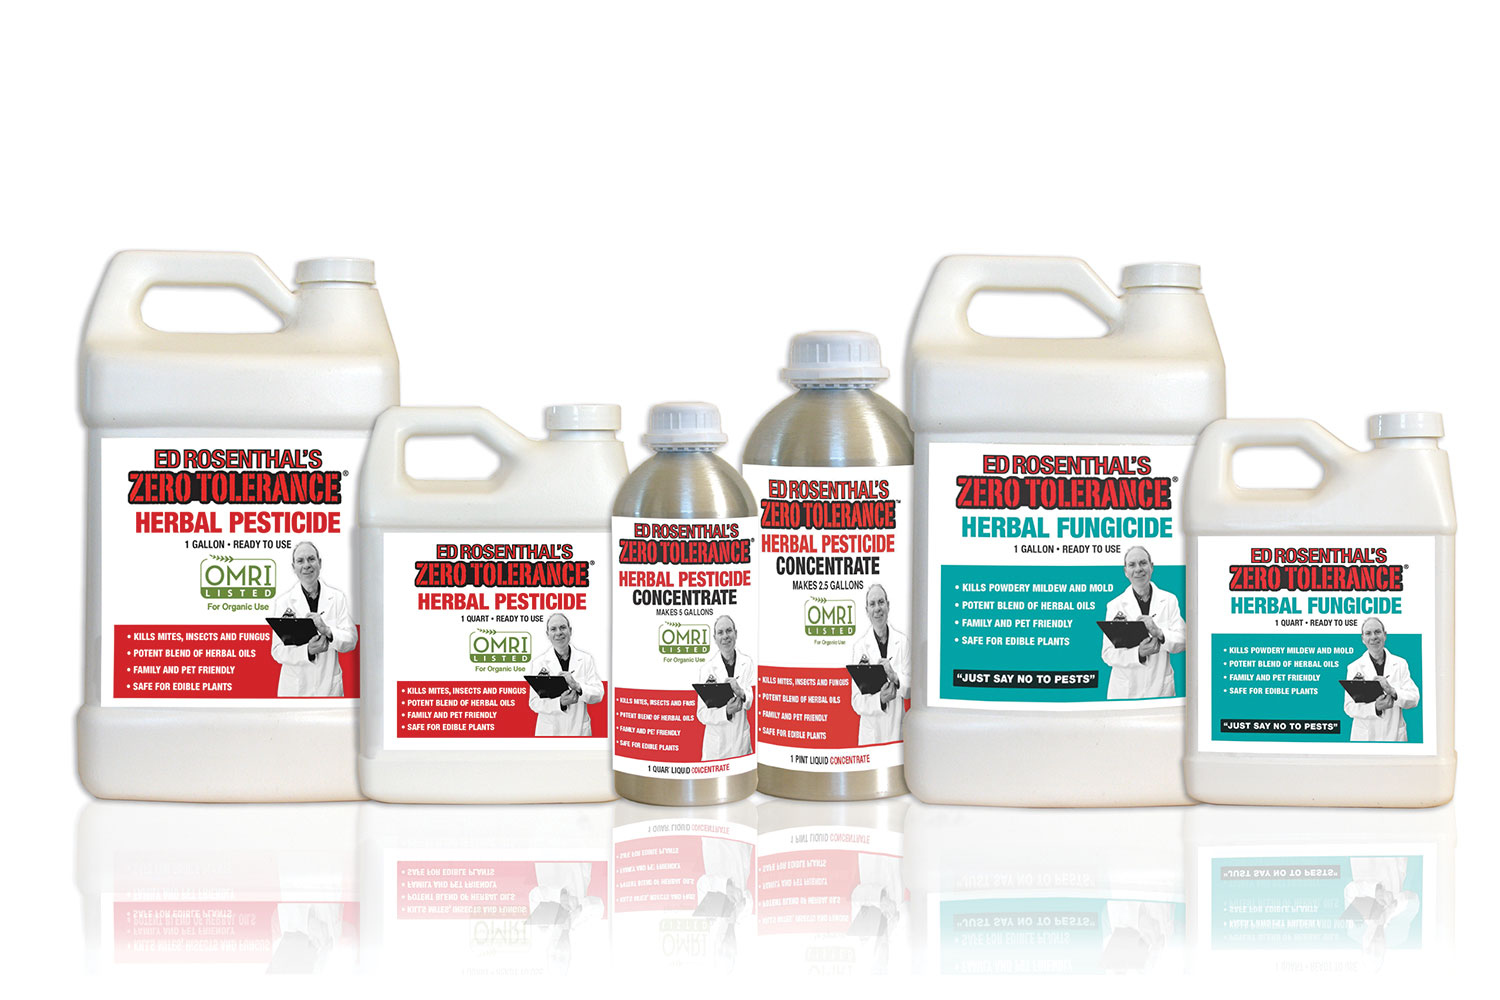 Zero Tolerance: Natural, Environmentally-Safe Garden Solutions - Pesticide and Fungicide. Made from Essential Oils. OMRI-Approved.